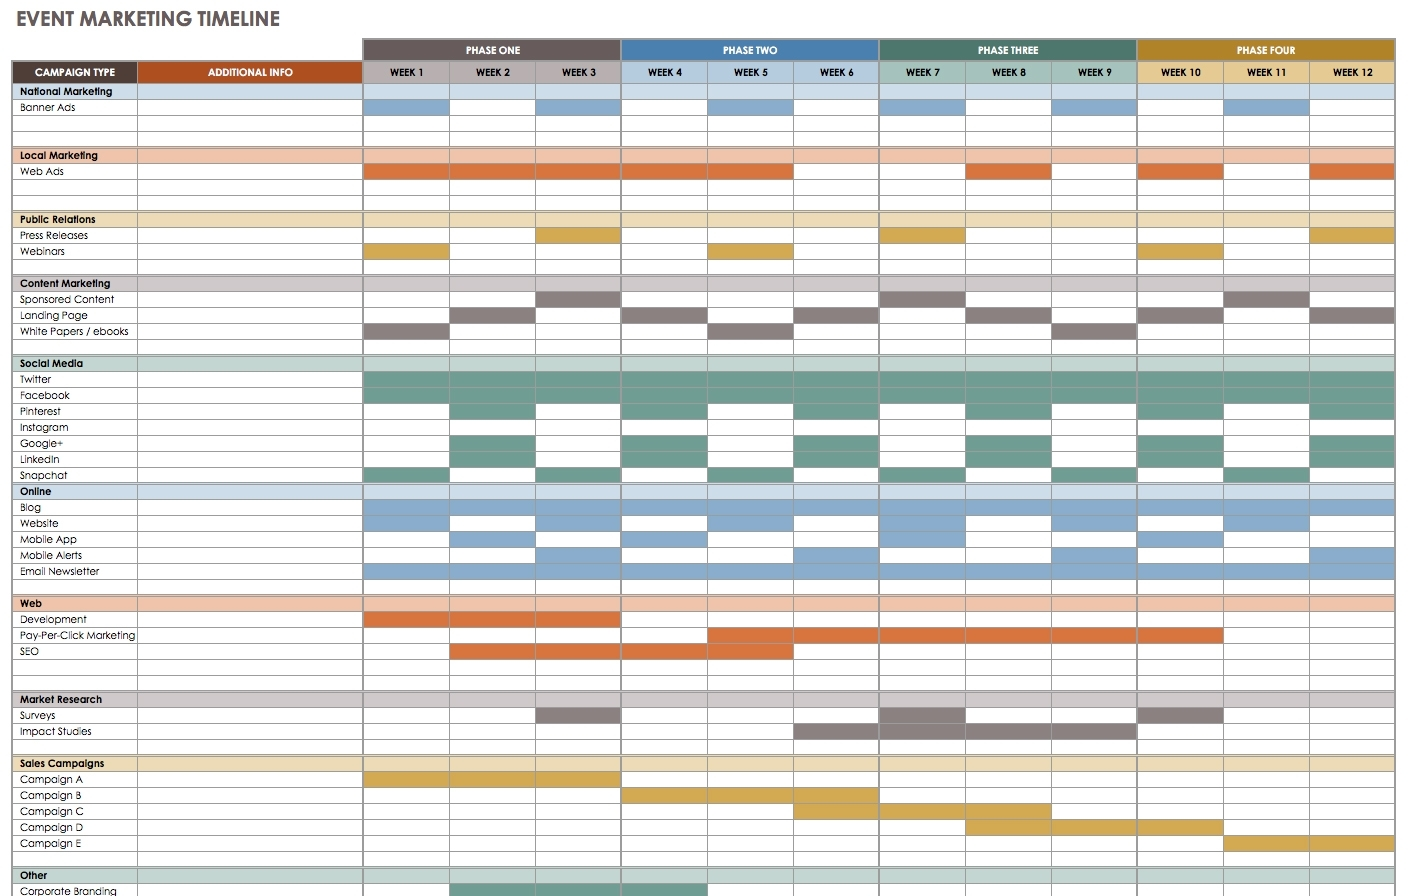 Free Event Planning Templates Smartsheet Conference Schedule regarding 2 Week Induction Timetable Free Template